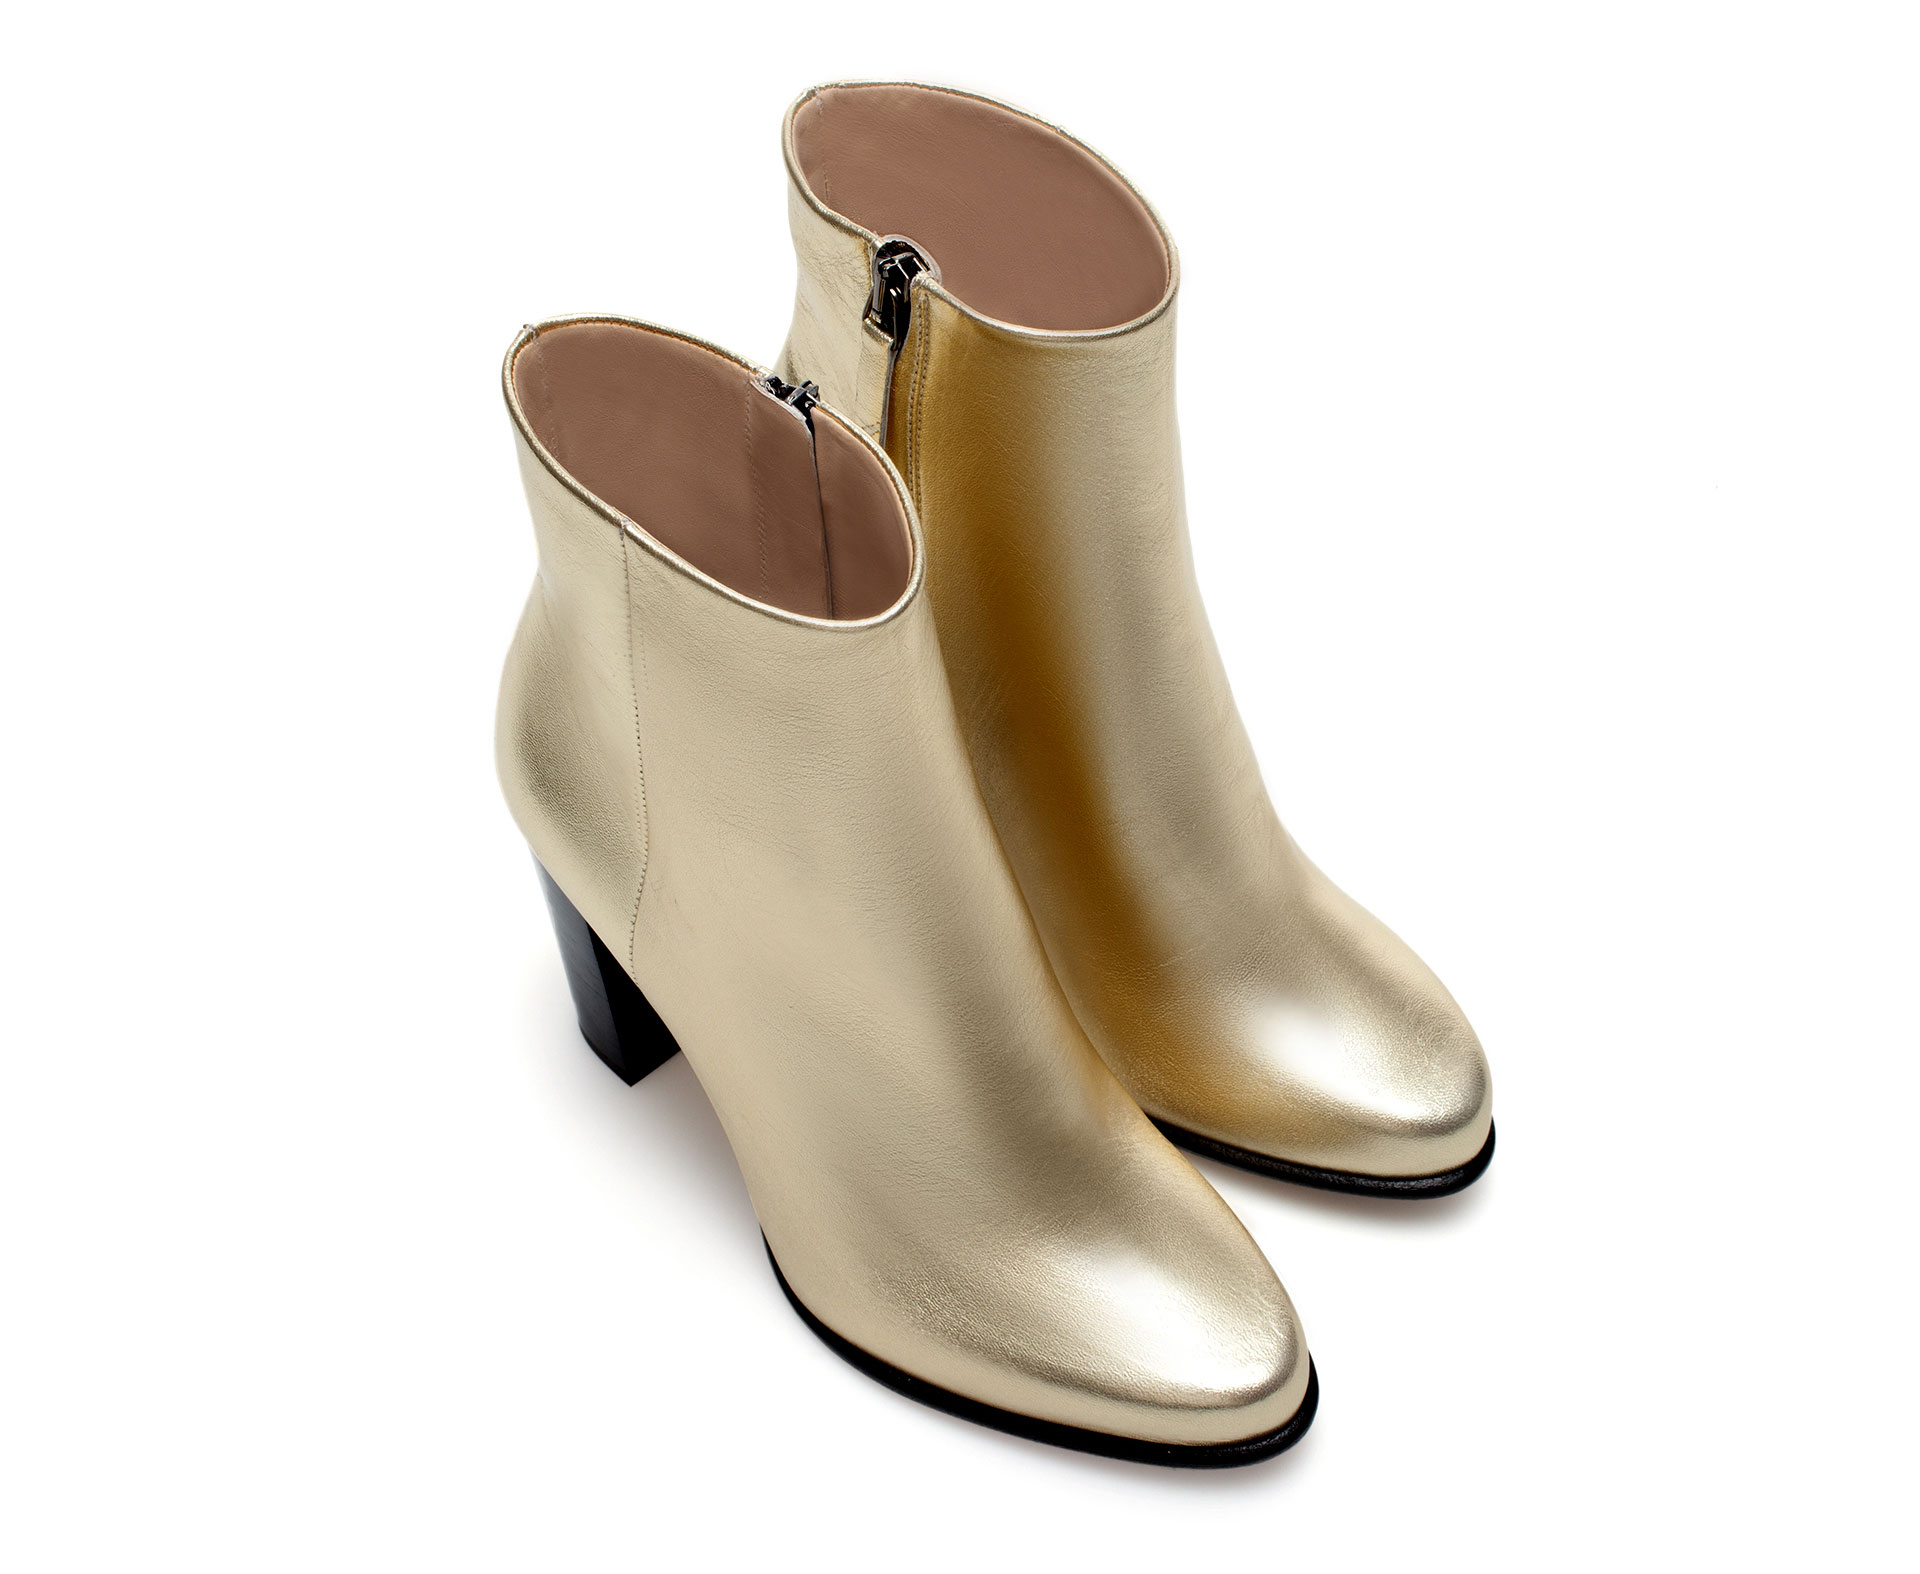 Zara Gold Leather Ankle Boot in Metallic | Lyst